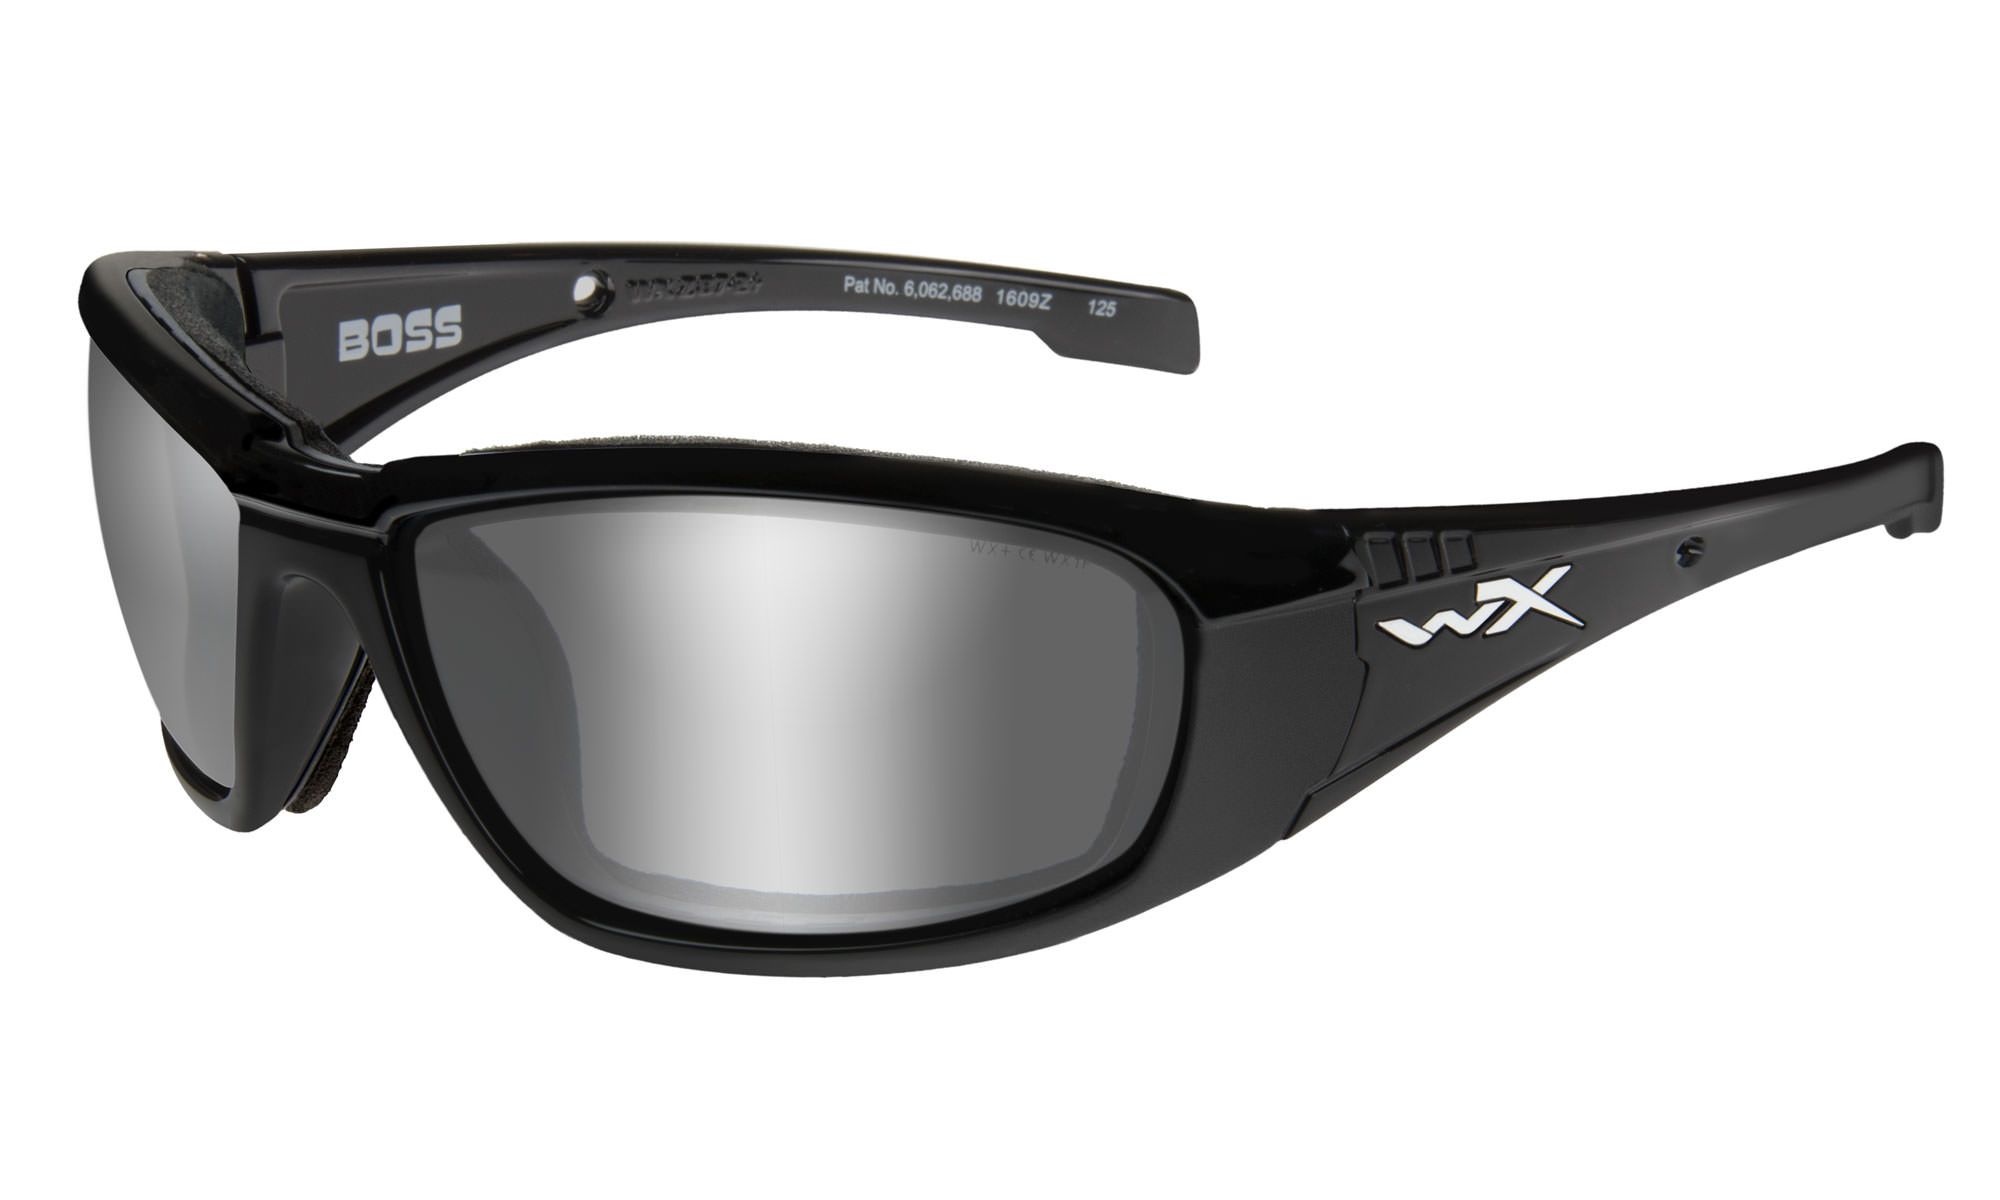 443f6cce47fb Wiley-X WX Boss Gloss Black with Grey Silver Flash Lenses | Wiley X